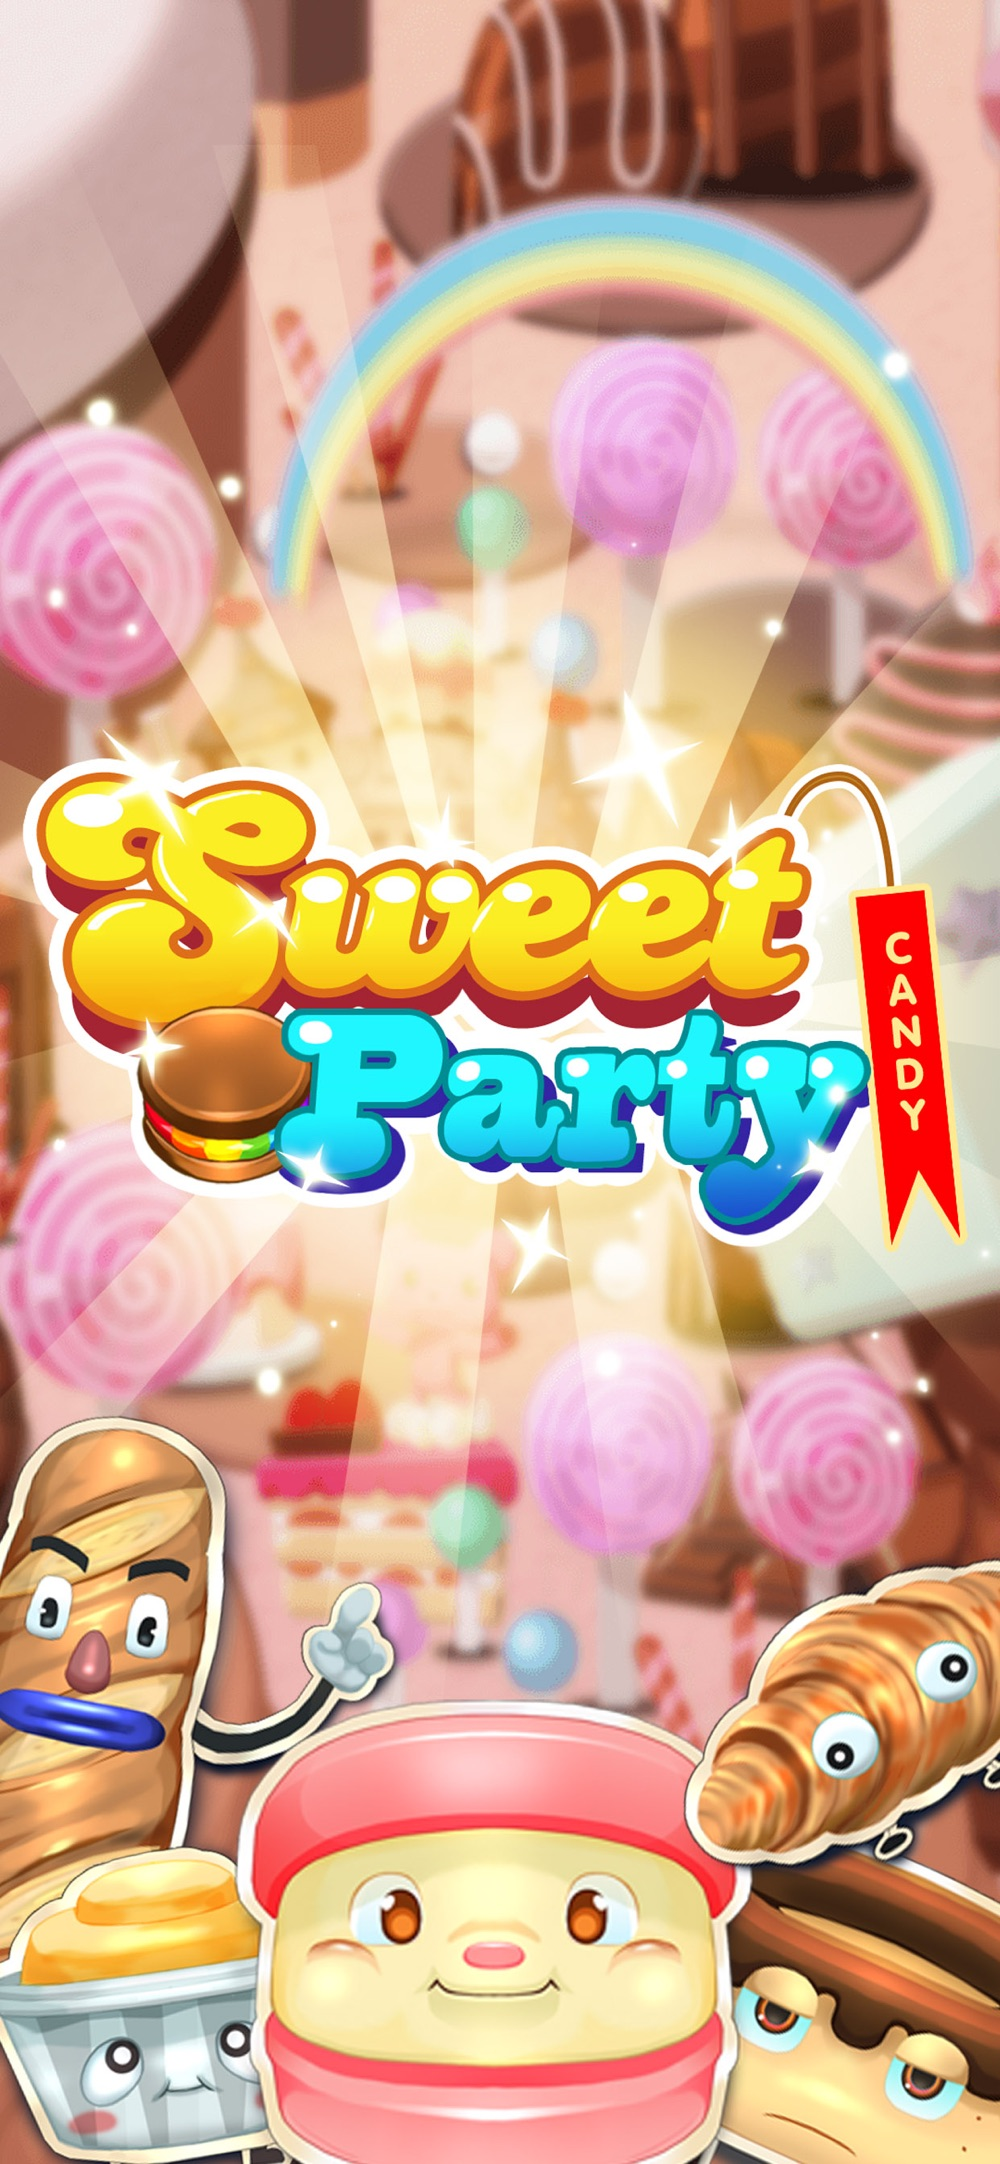 Sweet Candy Party hack tool